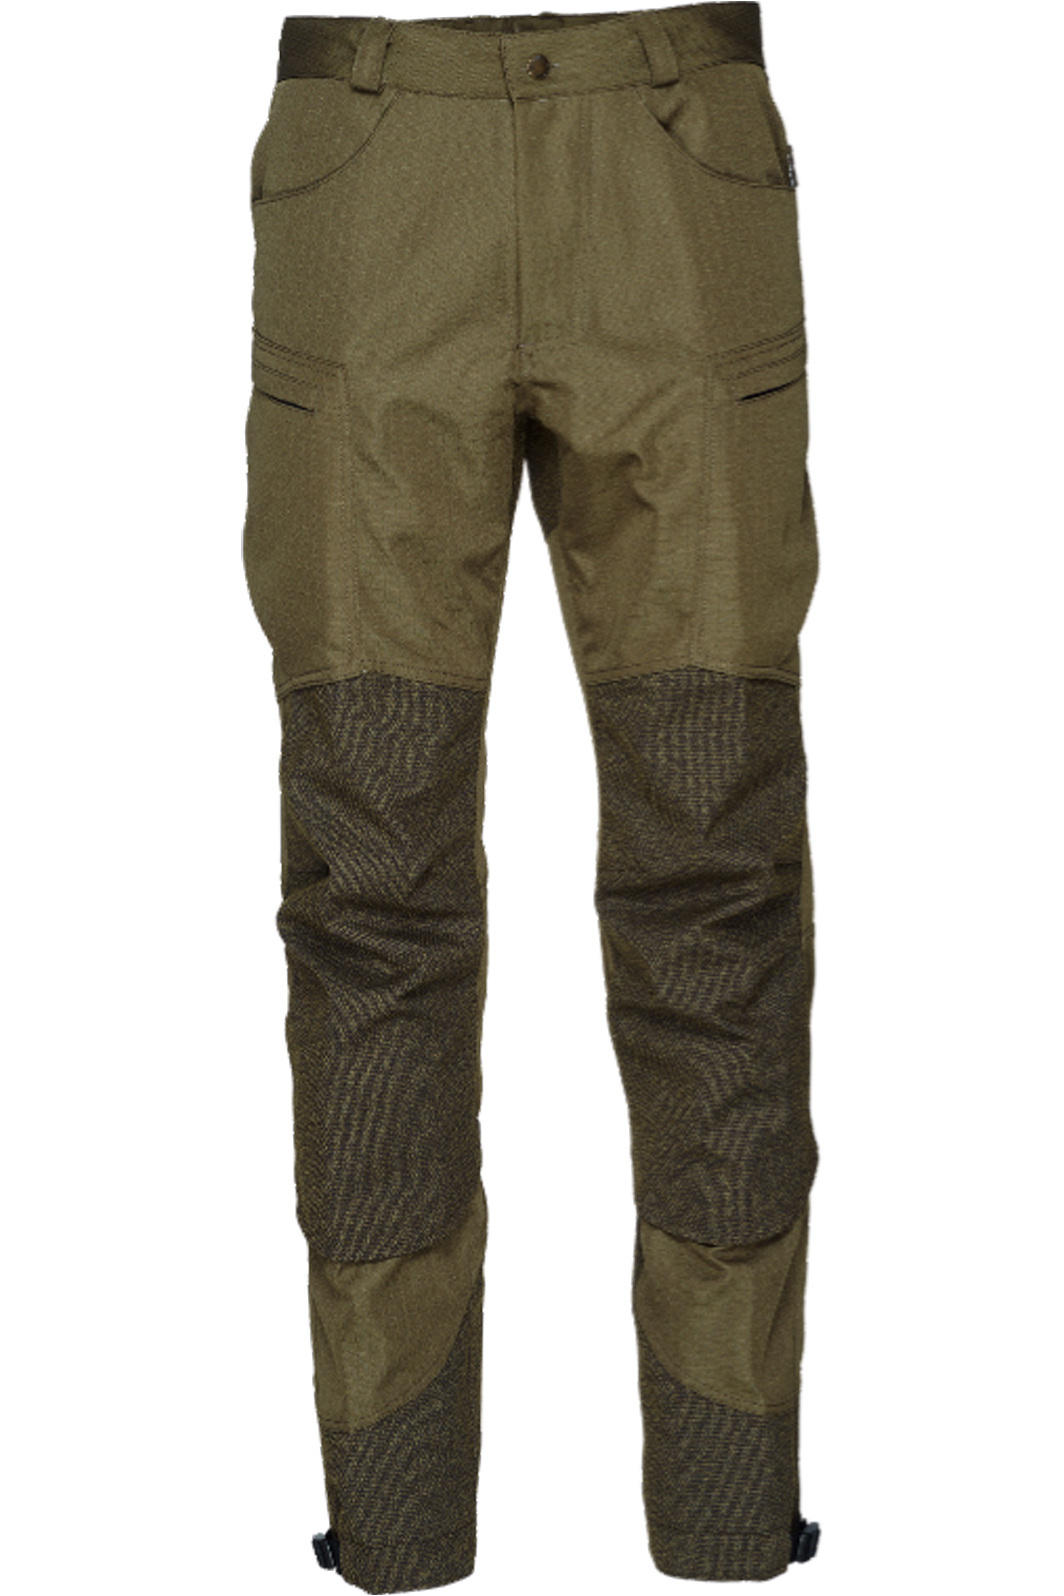 Seeland Mens Kraft Force Trousers Shaded Olive